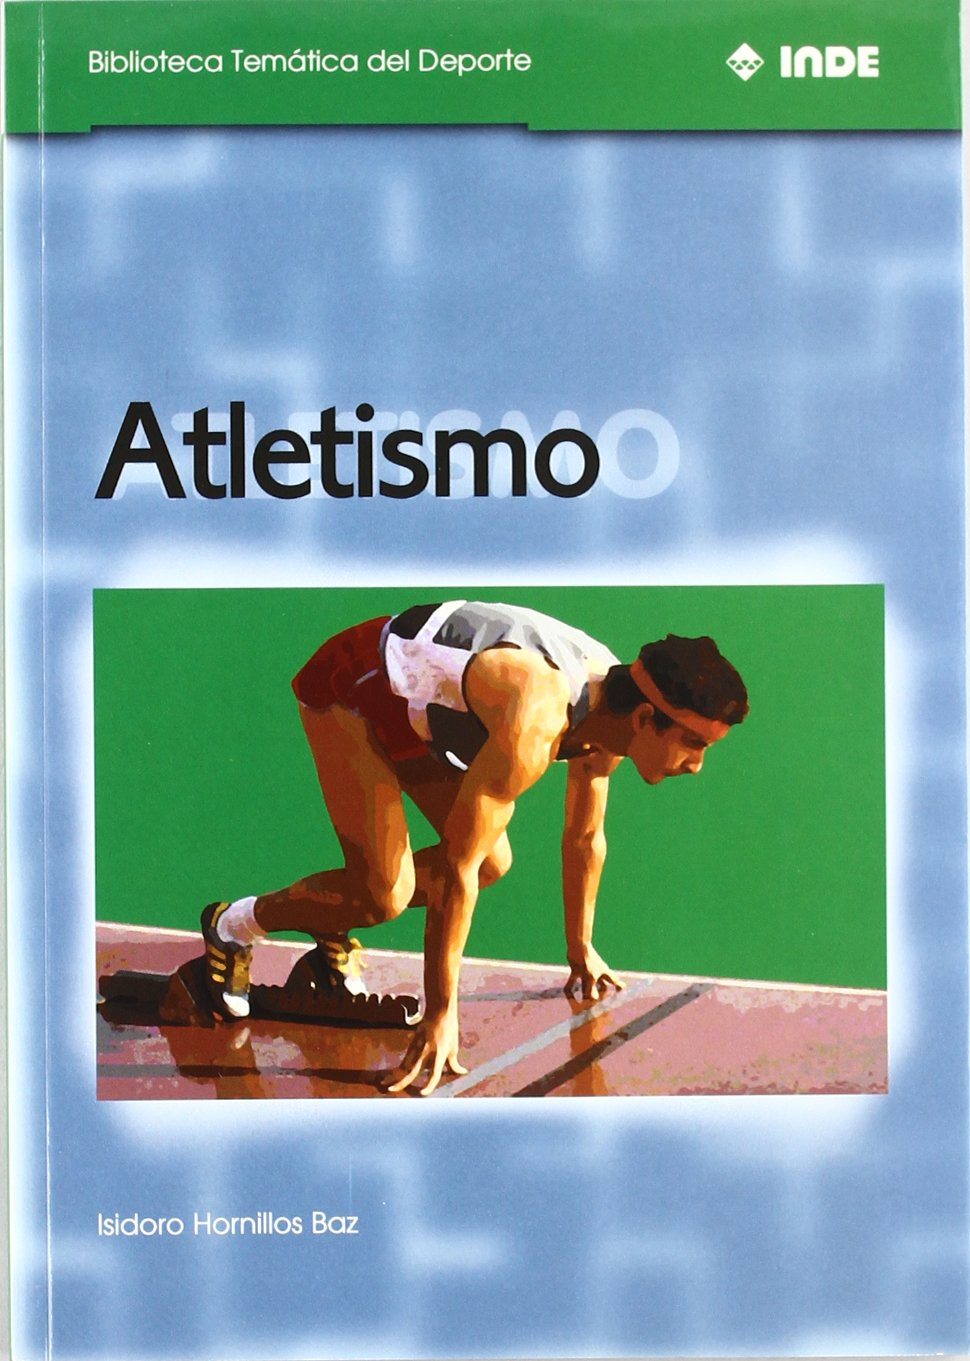 Atletismo (Spanish Edition): Isidoro Hornillos Baz: 9788495114211: Amazon.com: Books